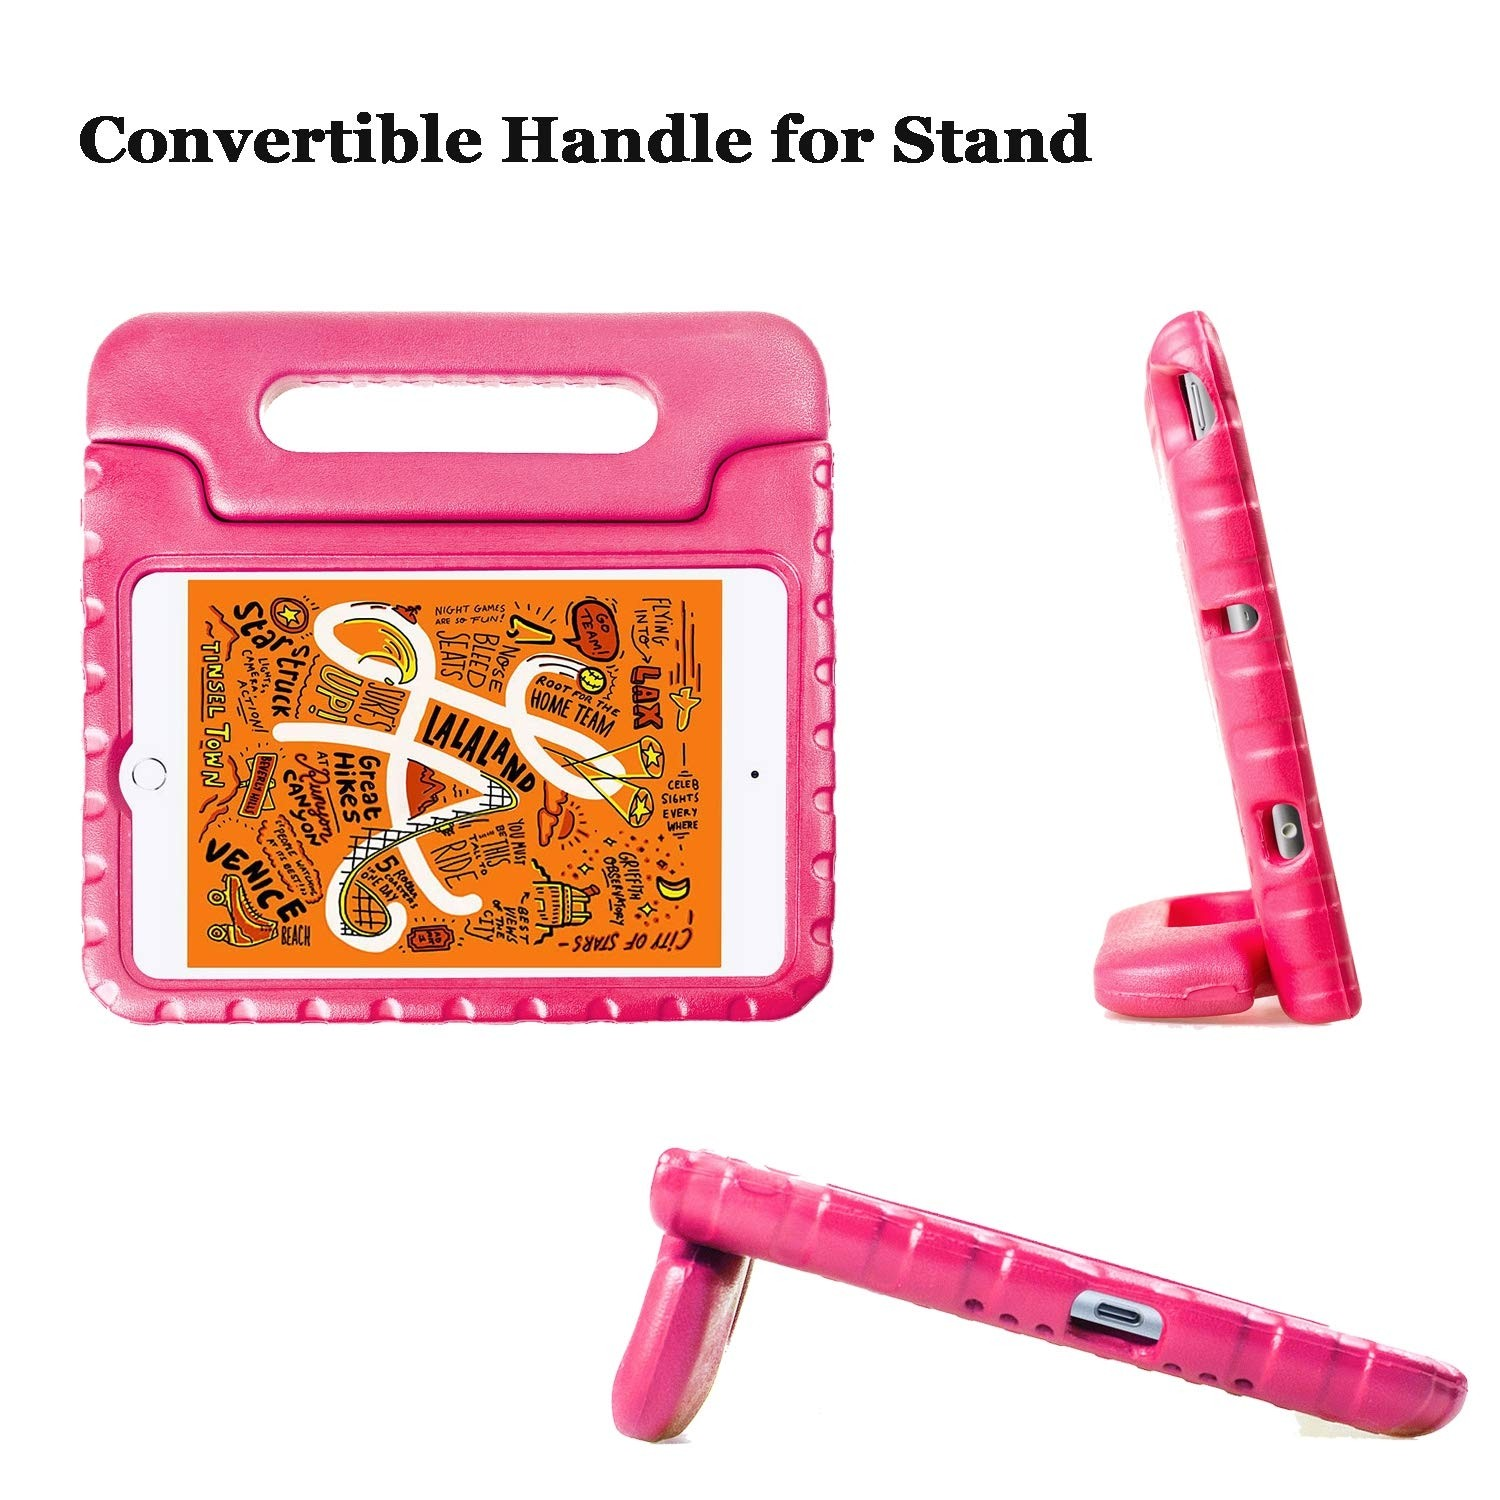 Kids Case for iPad Mini 5, 4 - Light Weight Shockproof Convertible Handle Super Protective Stand Kids - Blue, B07Q575GFR